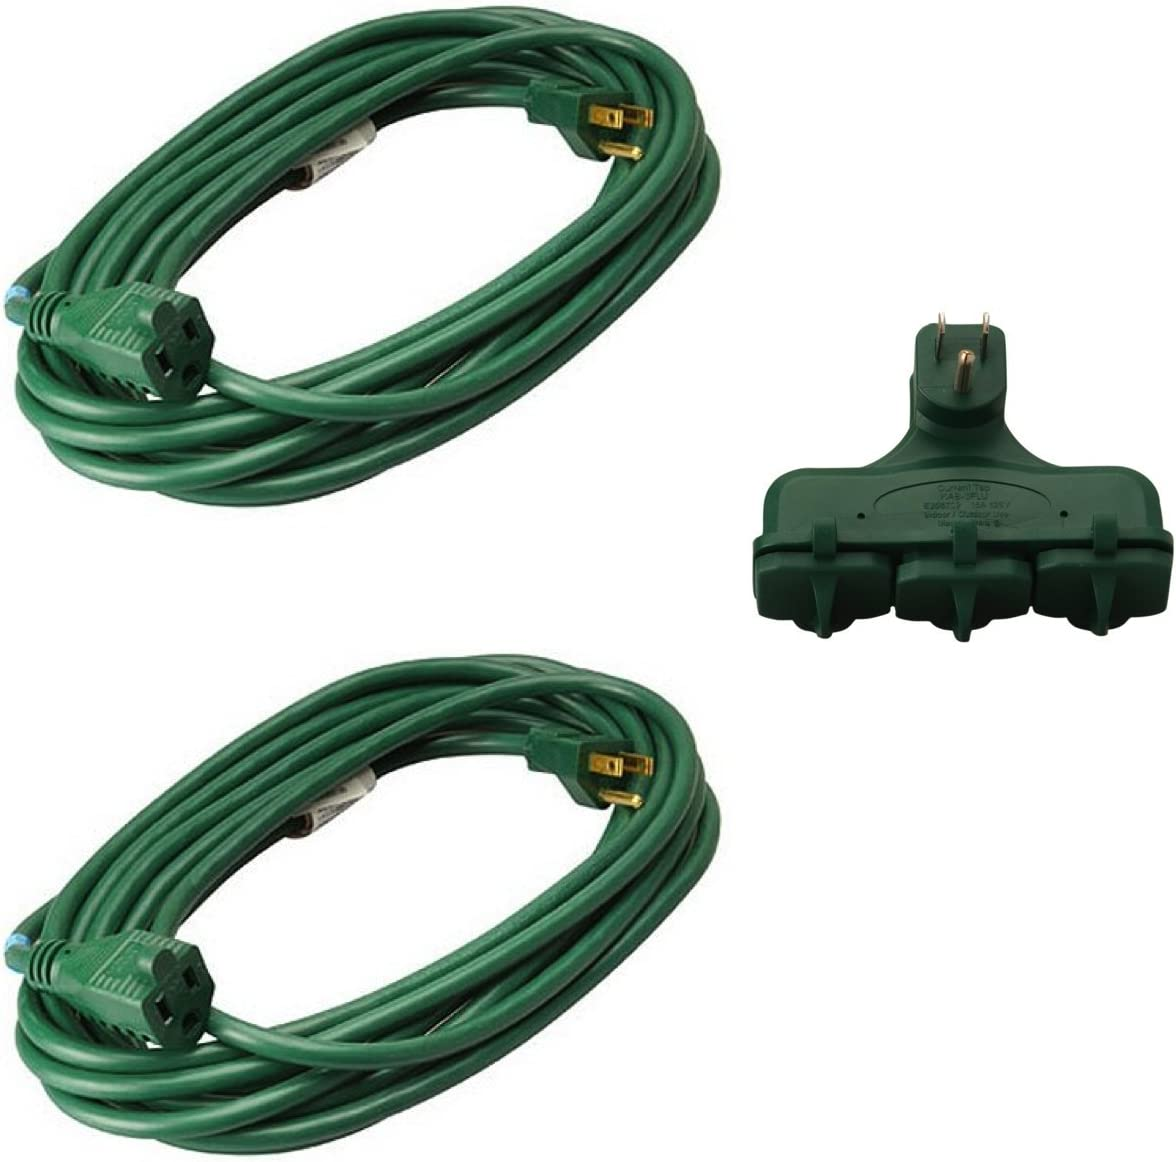 2-Pack Master Electrician 20-Foot 16/3 Green Vinyl Landscape Outdoor Extension Cord + FREE One 3-Outlet Adapter